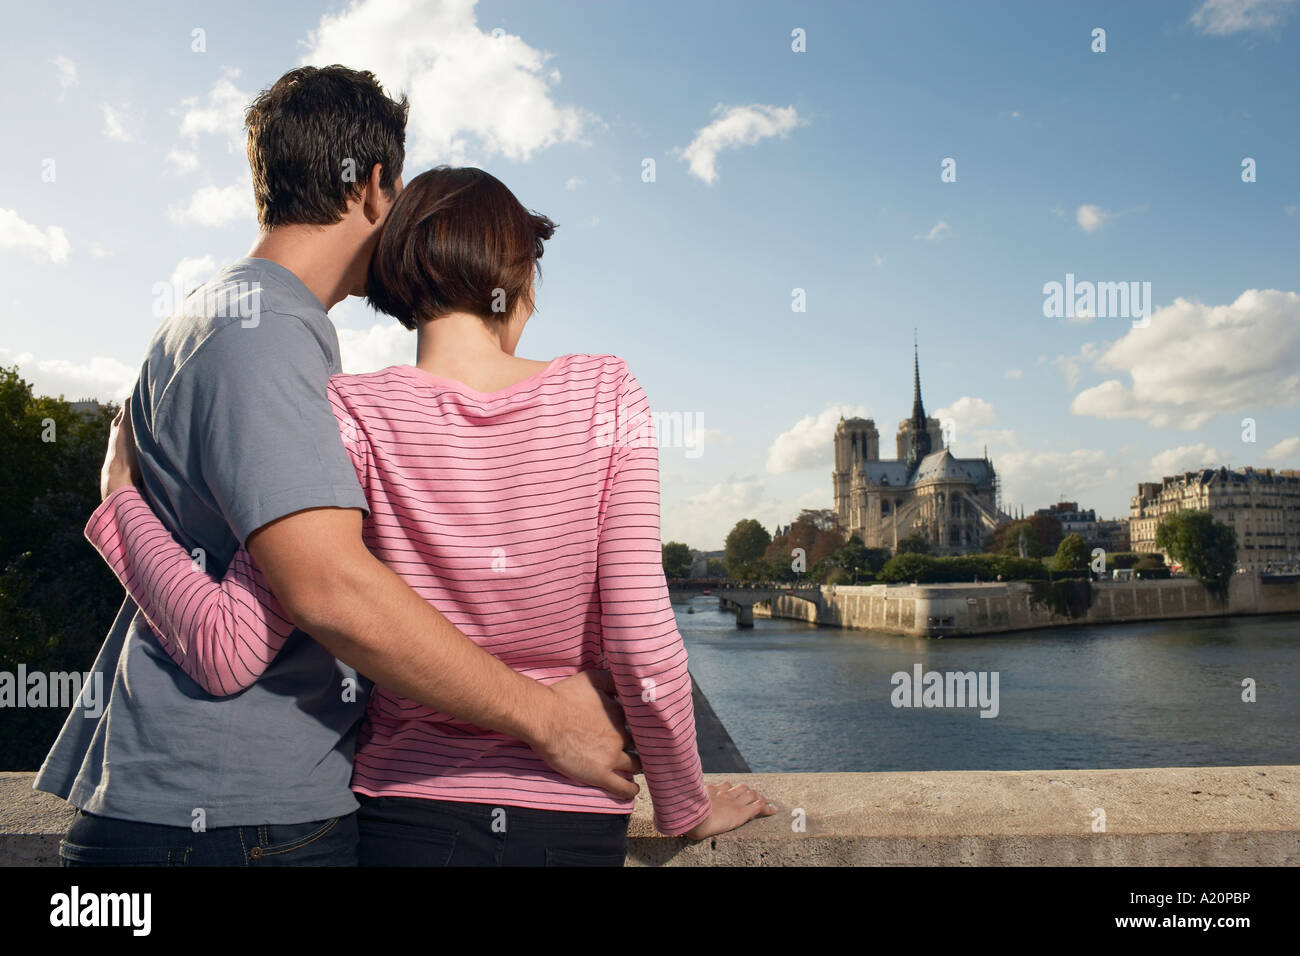 Paris, France, Couple embracing in front of Notre Dame Cathedral, back view - Stock Image